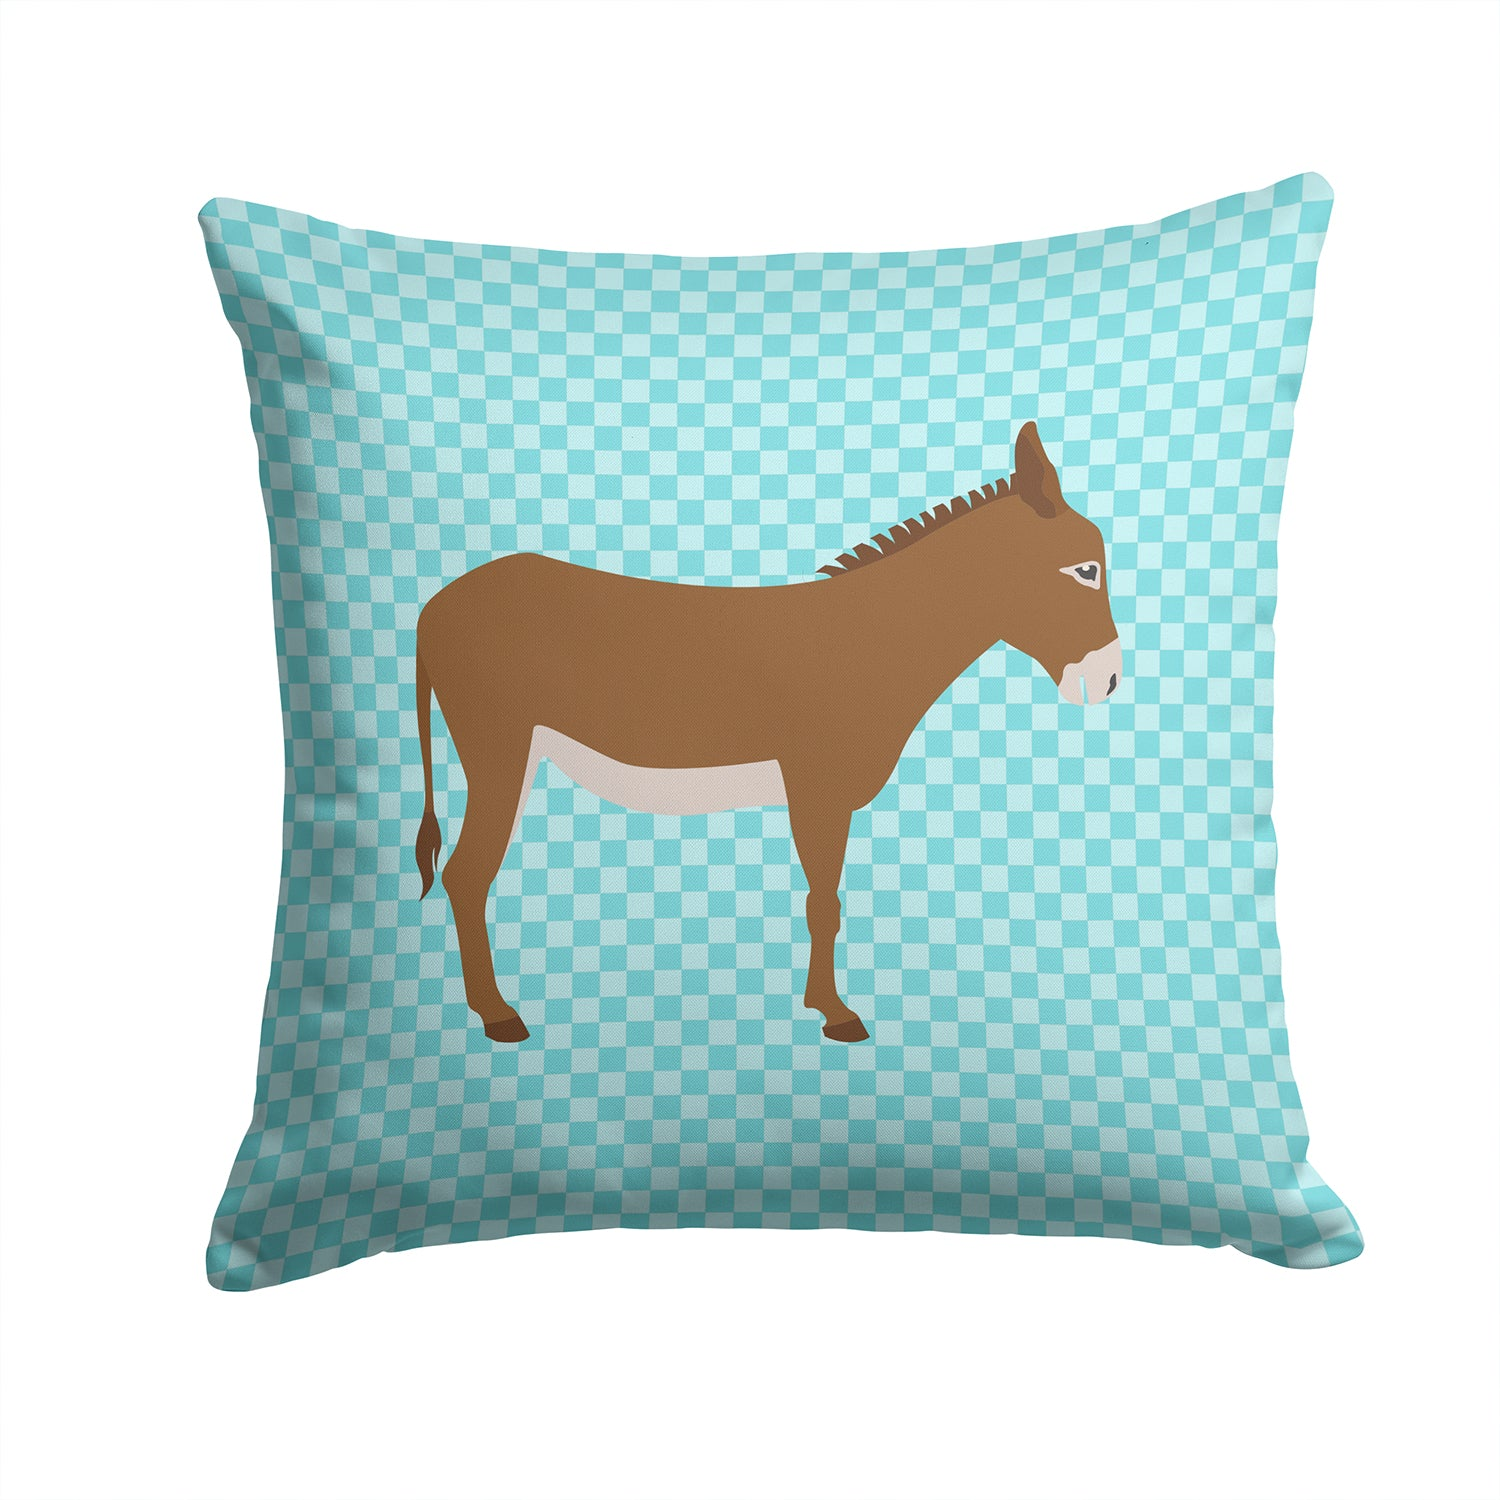 Cotentin Donkey Blue Check Fabric Decorative Pillow BB8023PW1414 by Caroline's Treasures